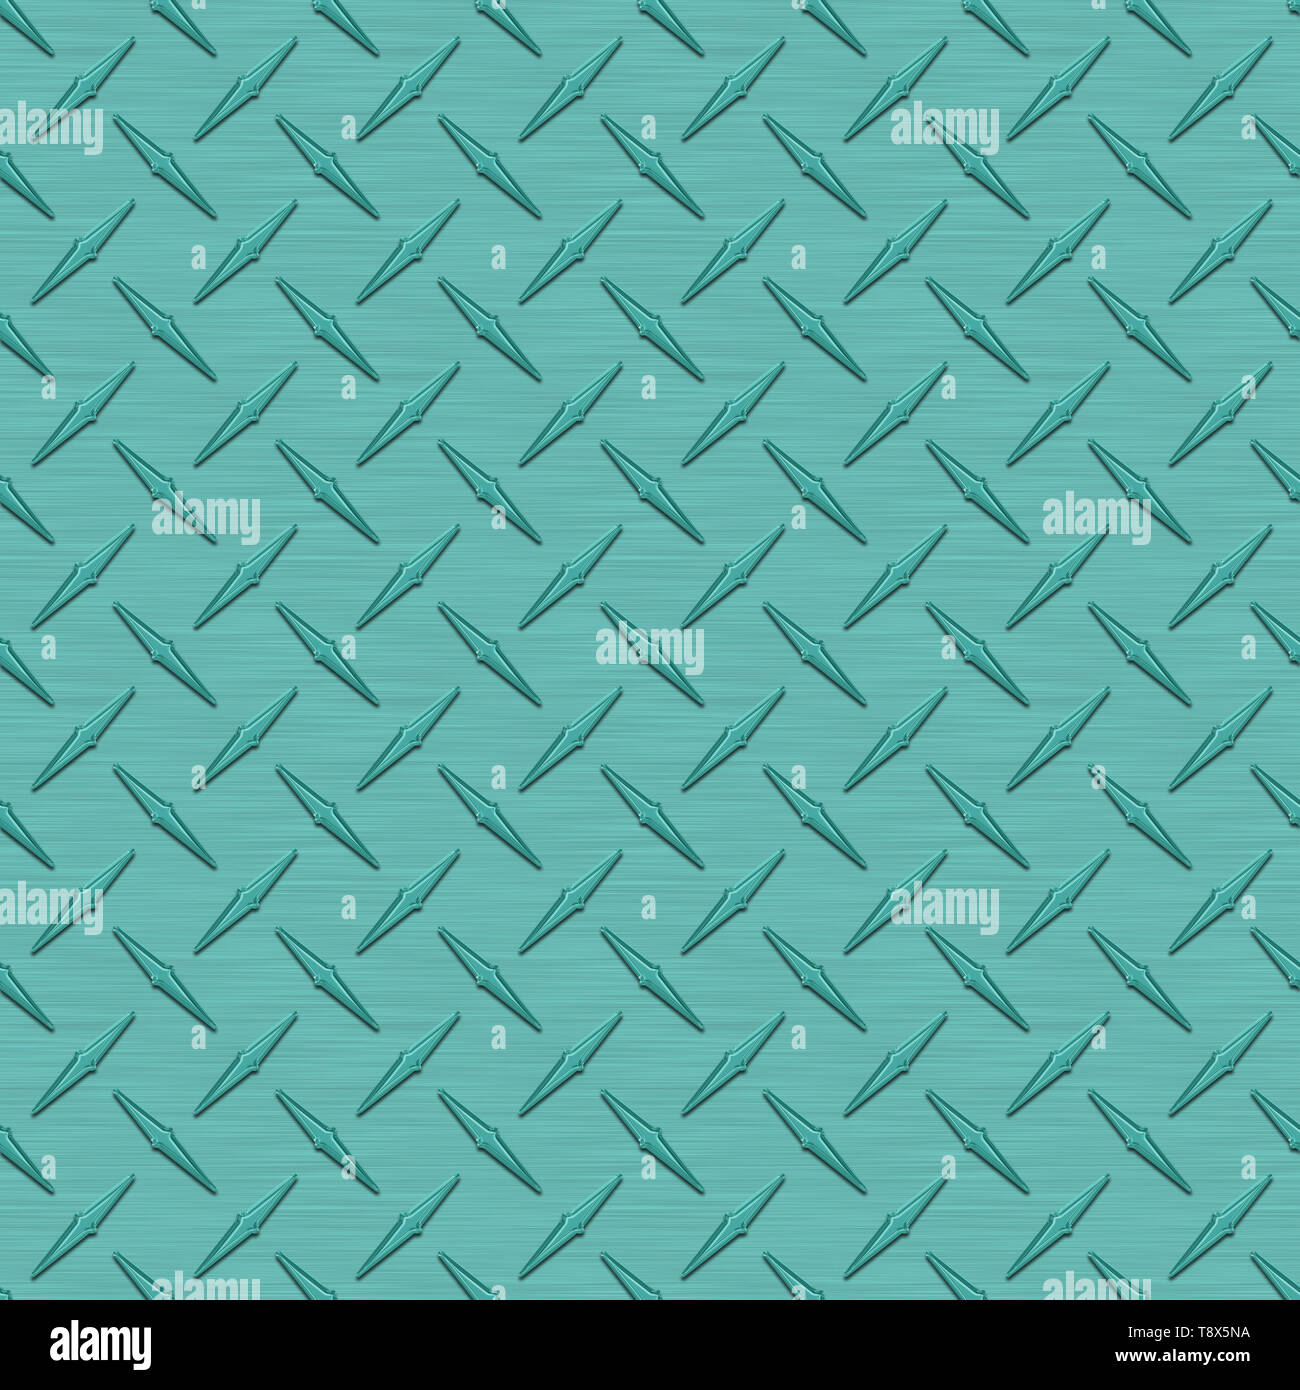 Aqua Diamond Plate Metal Seamless Texture Tile - Stock Image